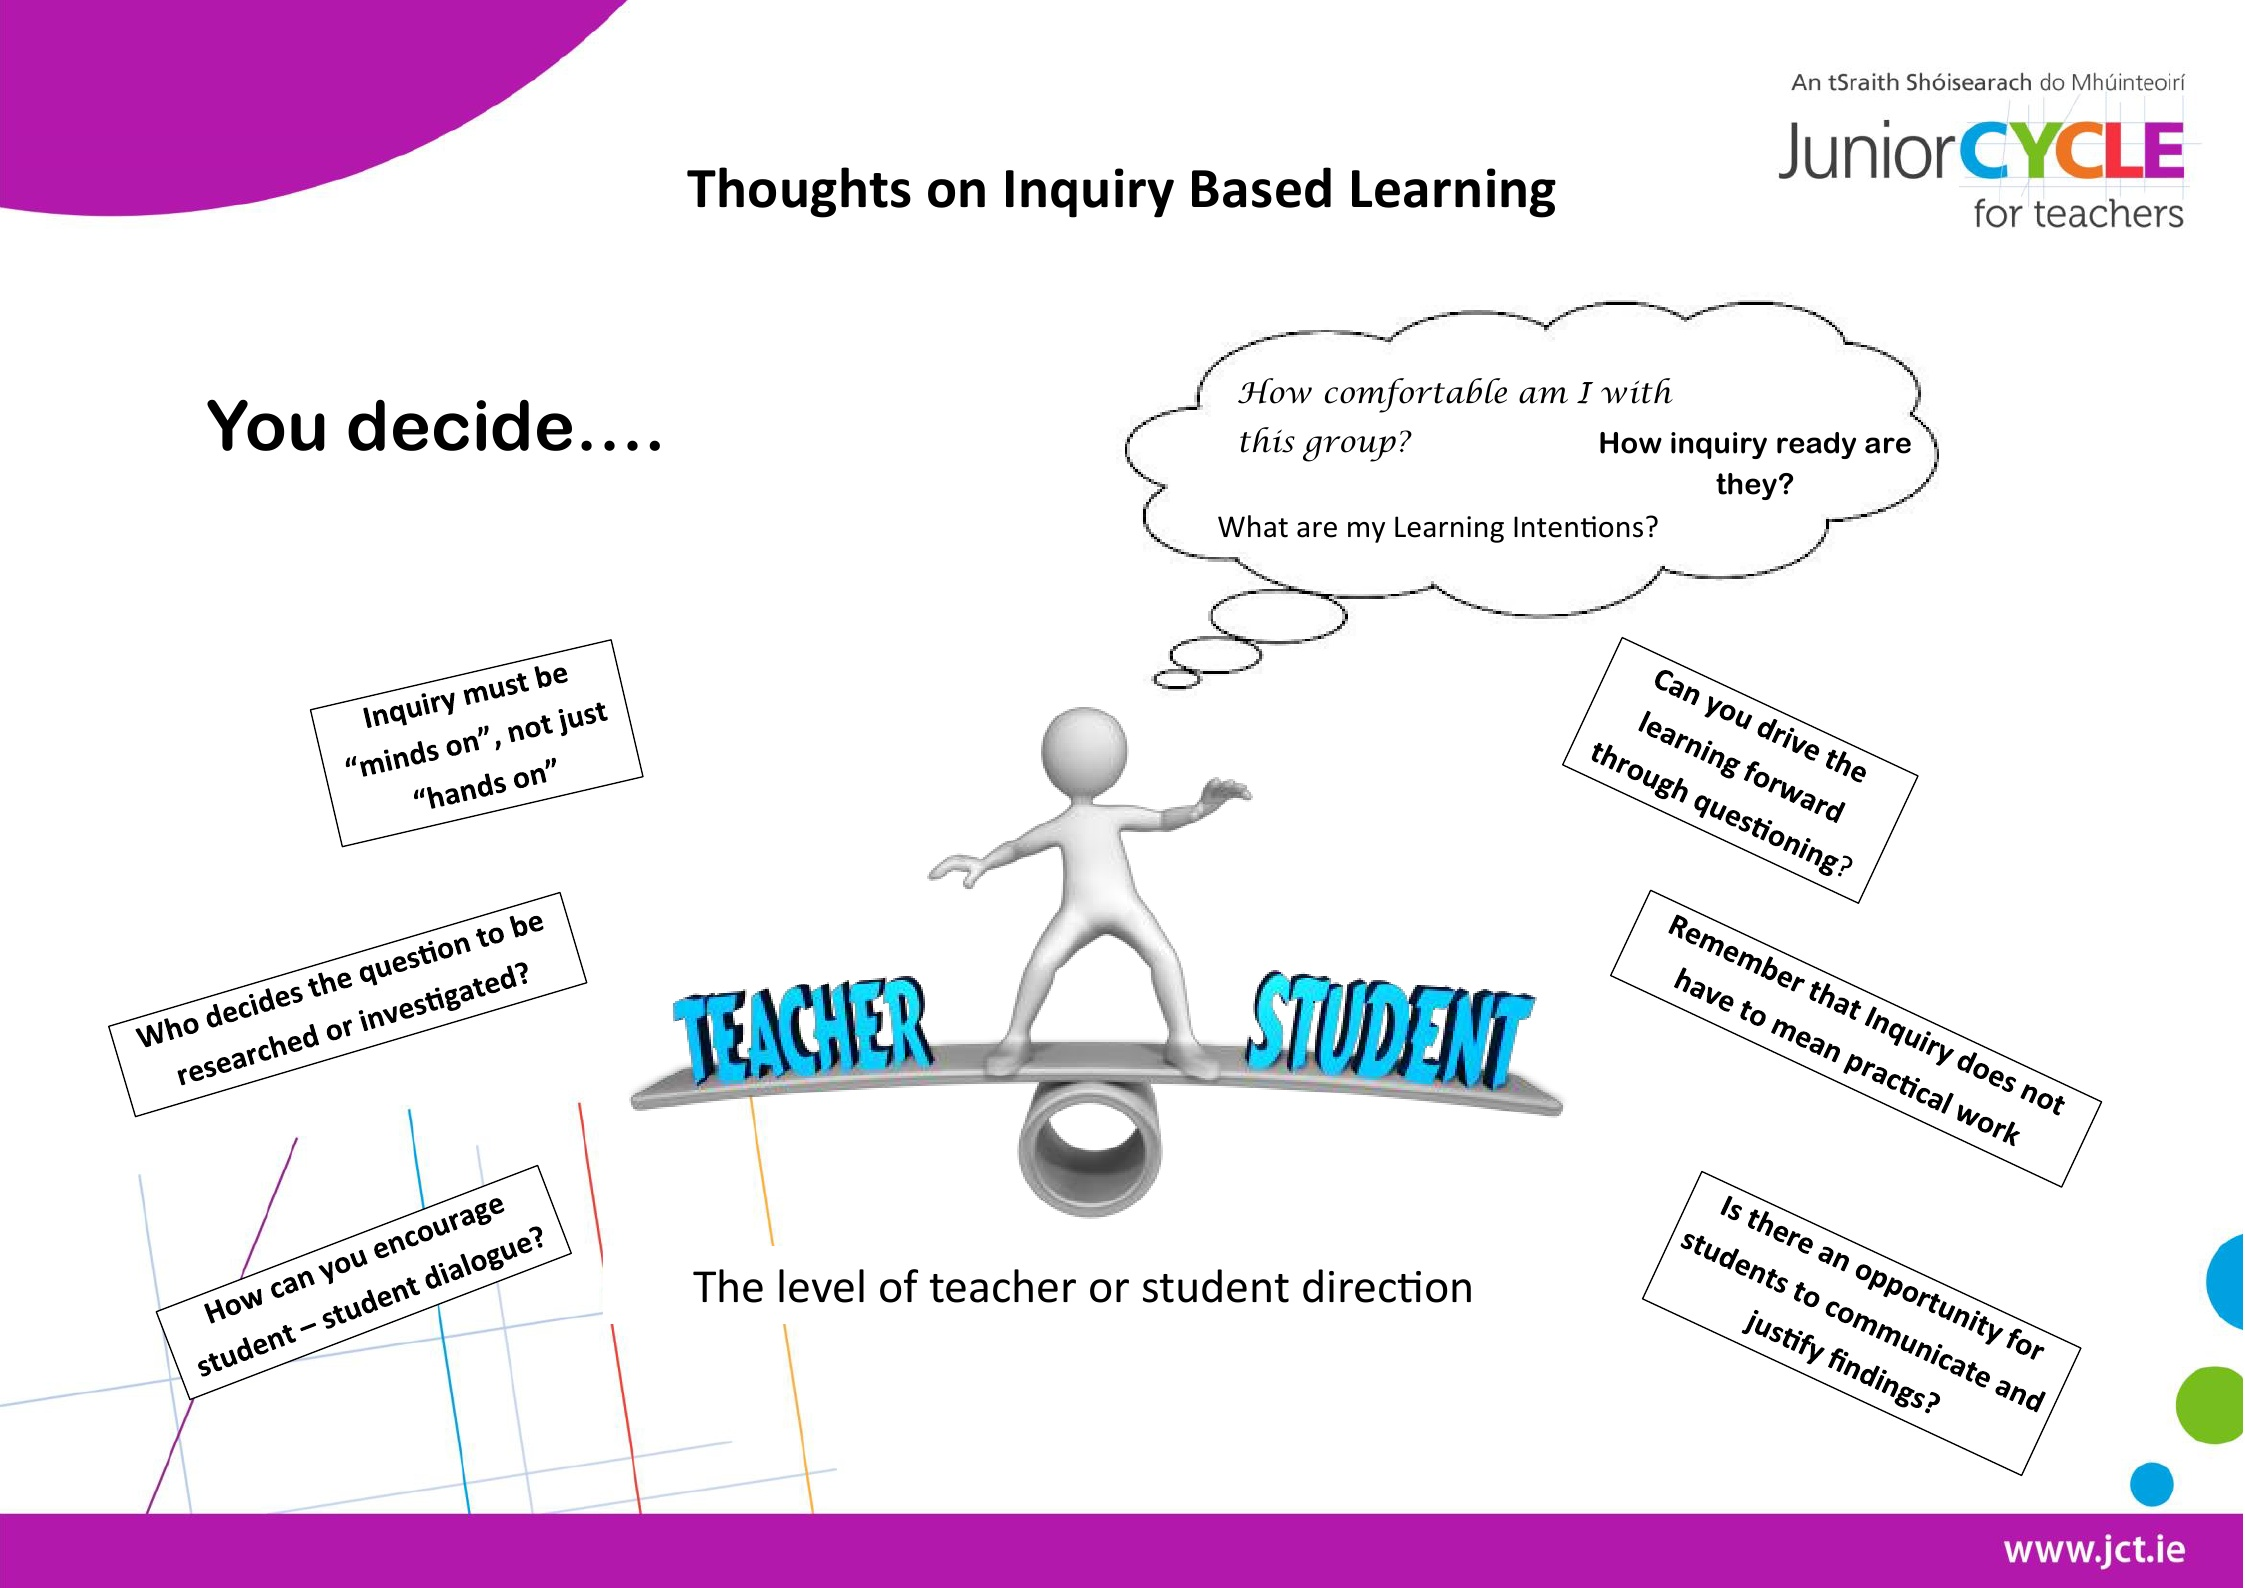 Thoughts on Inquiry Based Learning